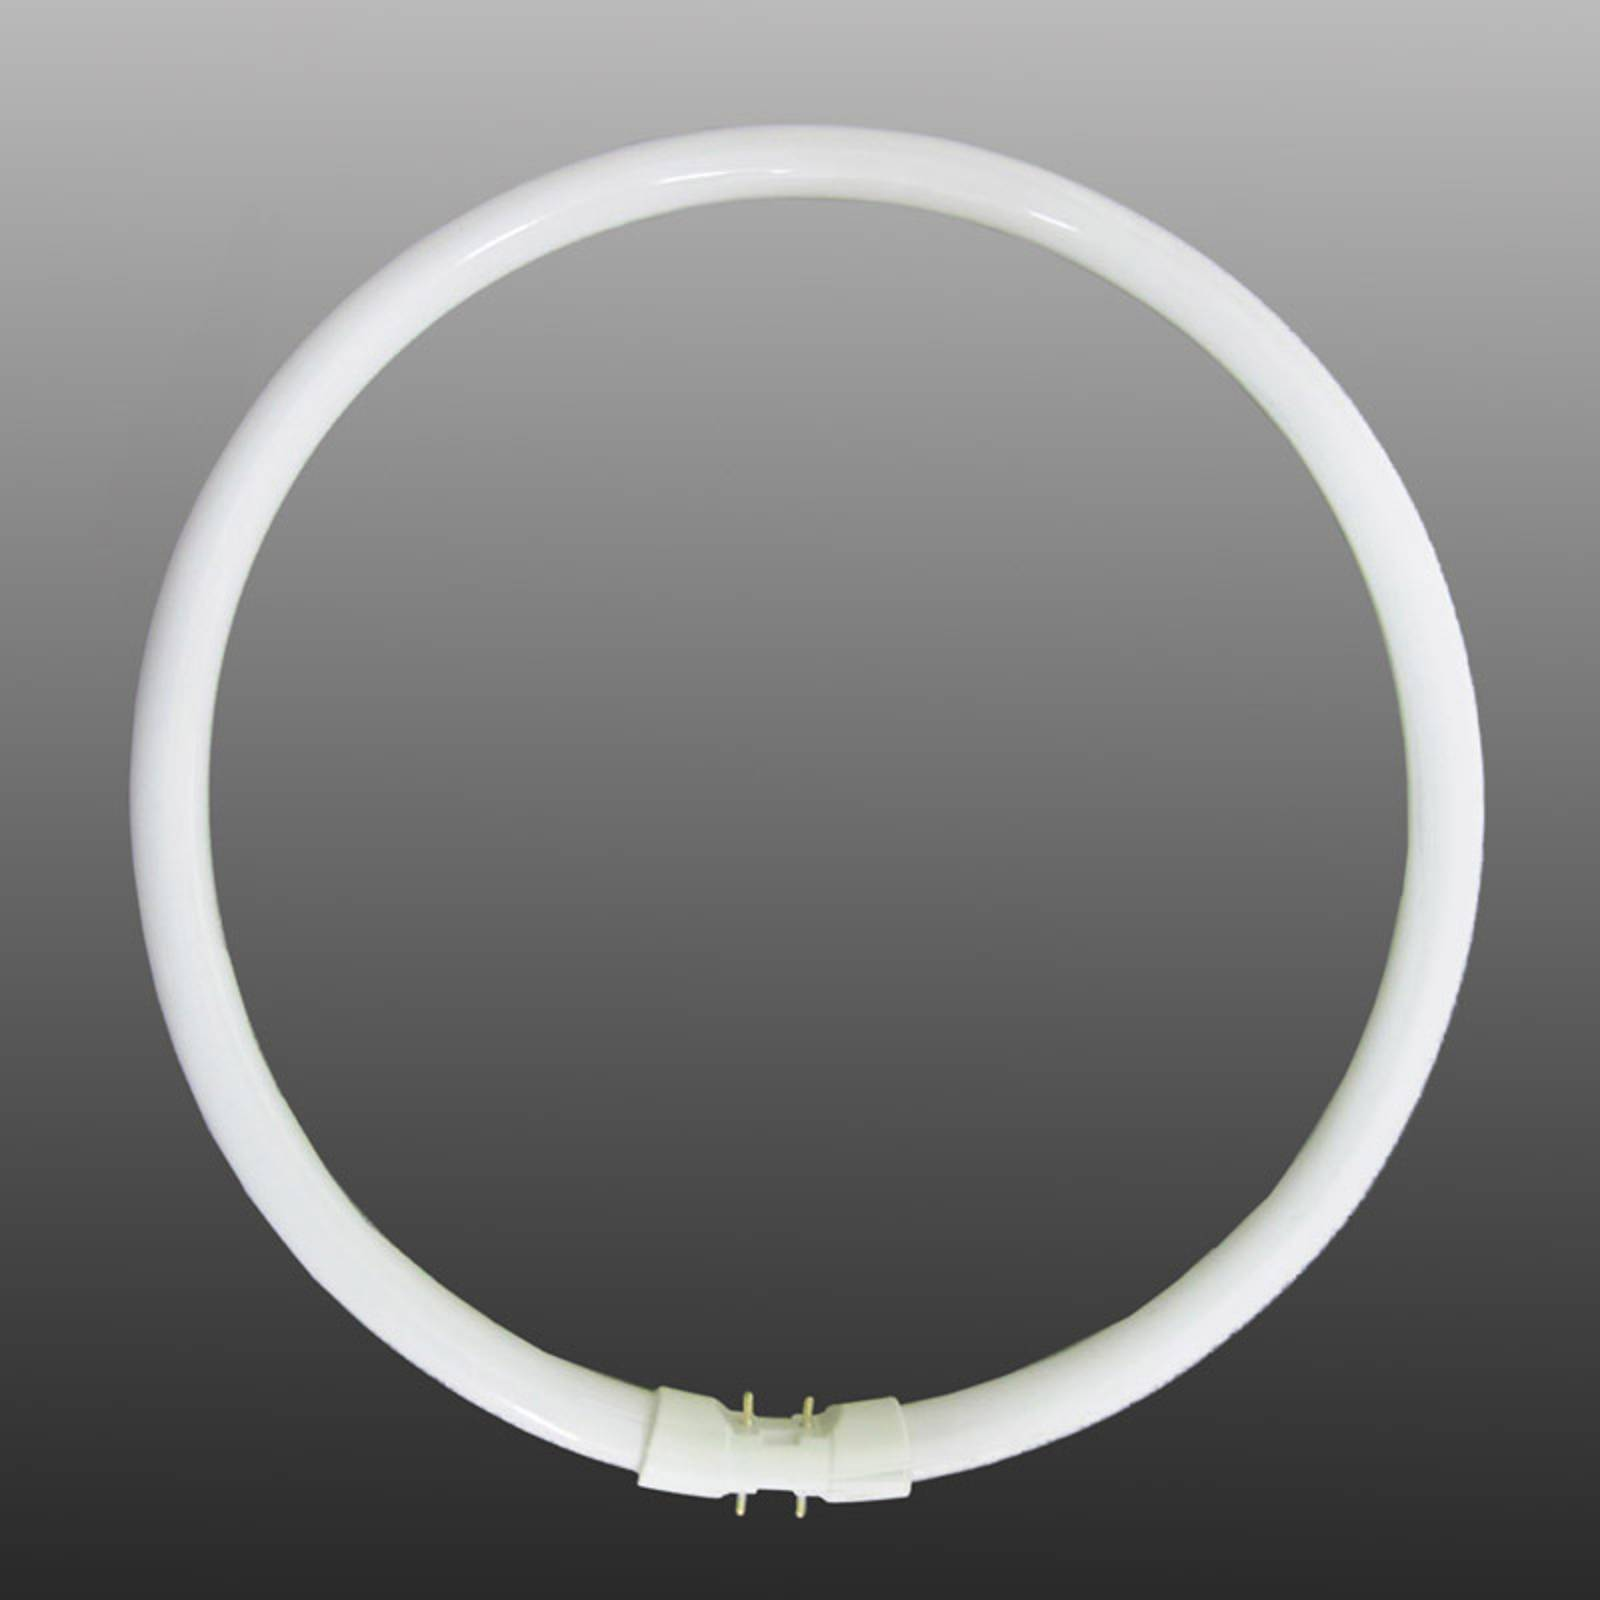 2GX13 T5 40W fluorescent ring, warm white from Stylvania